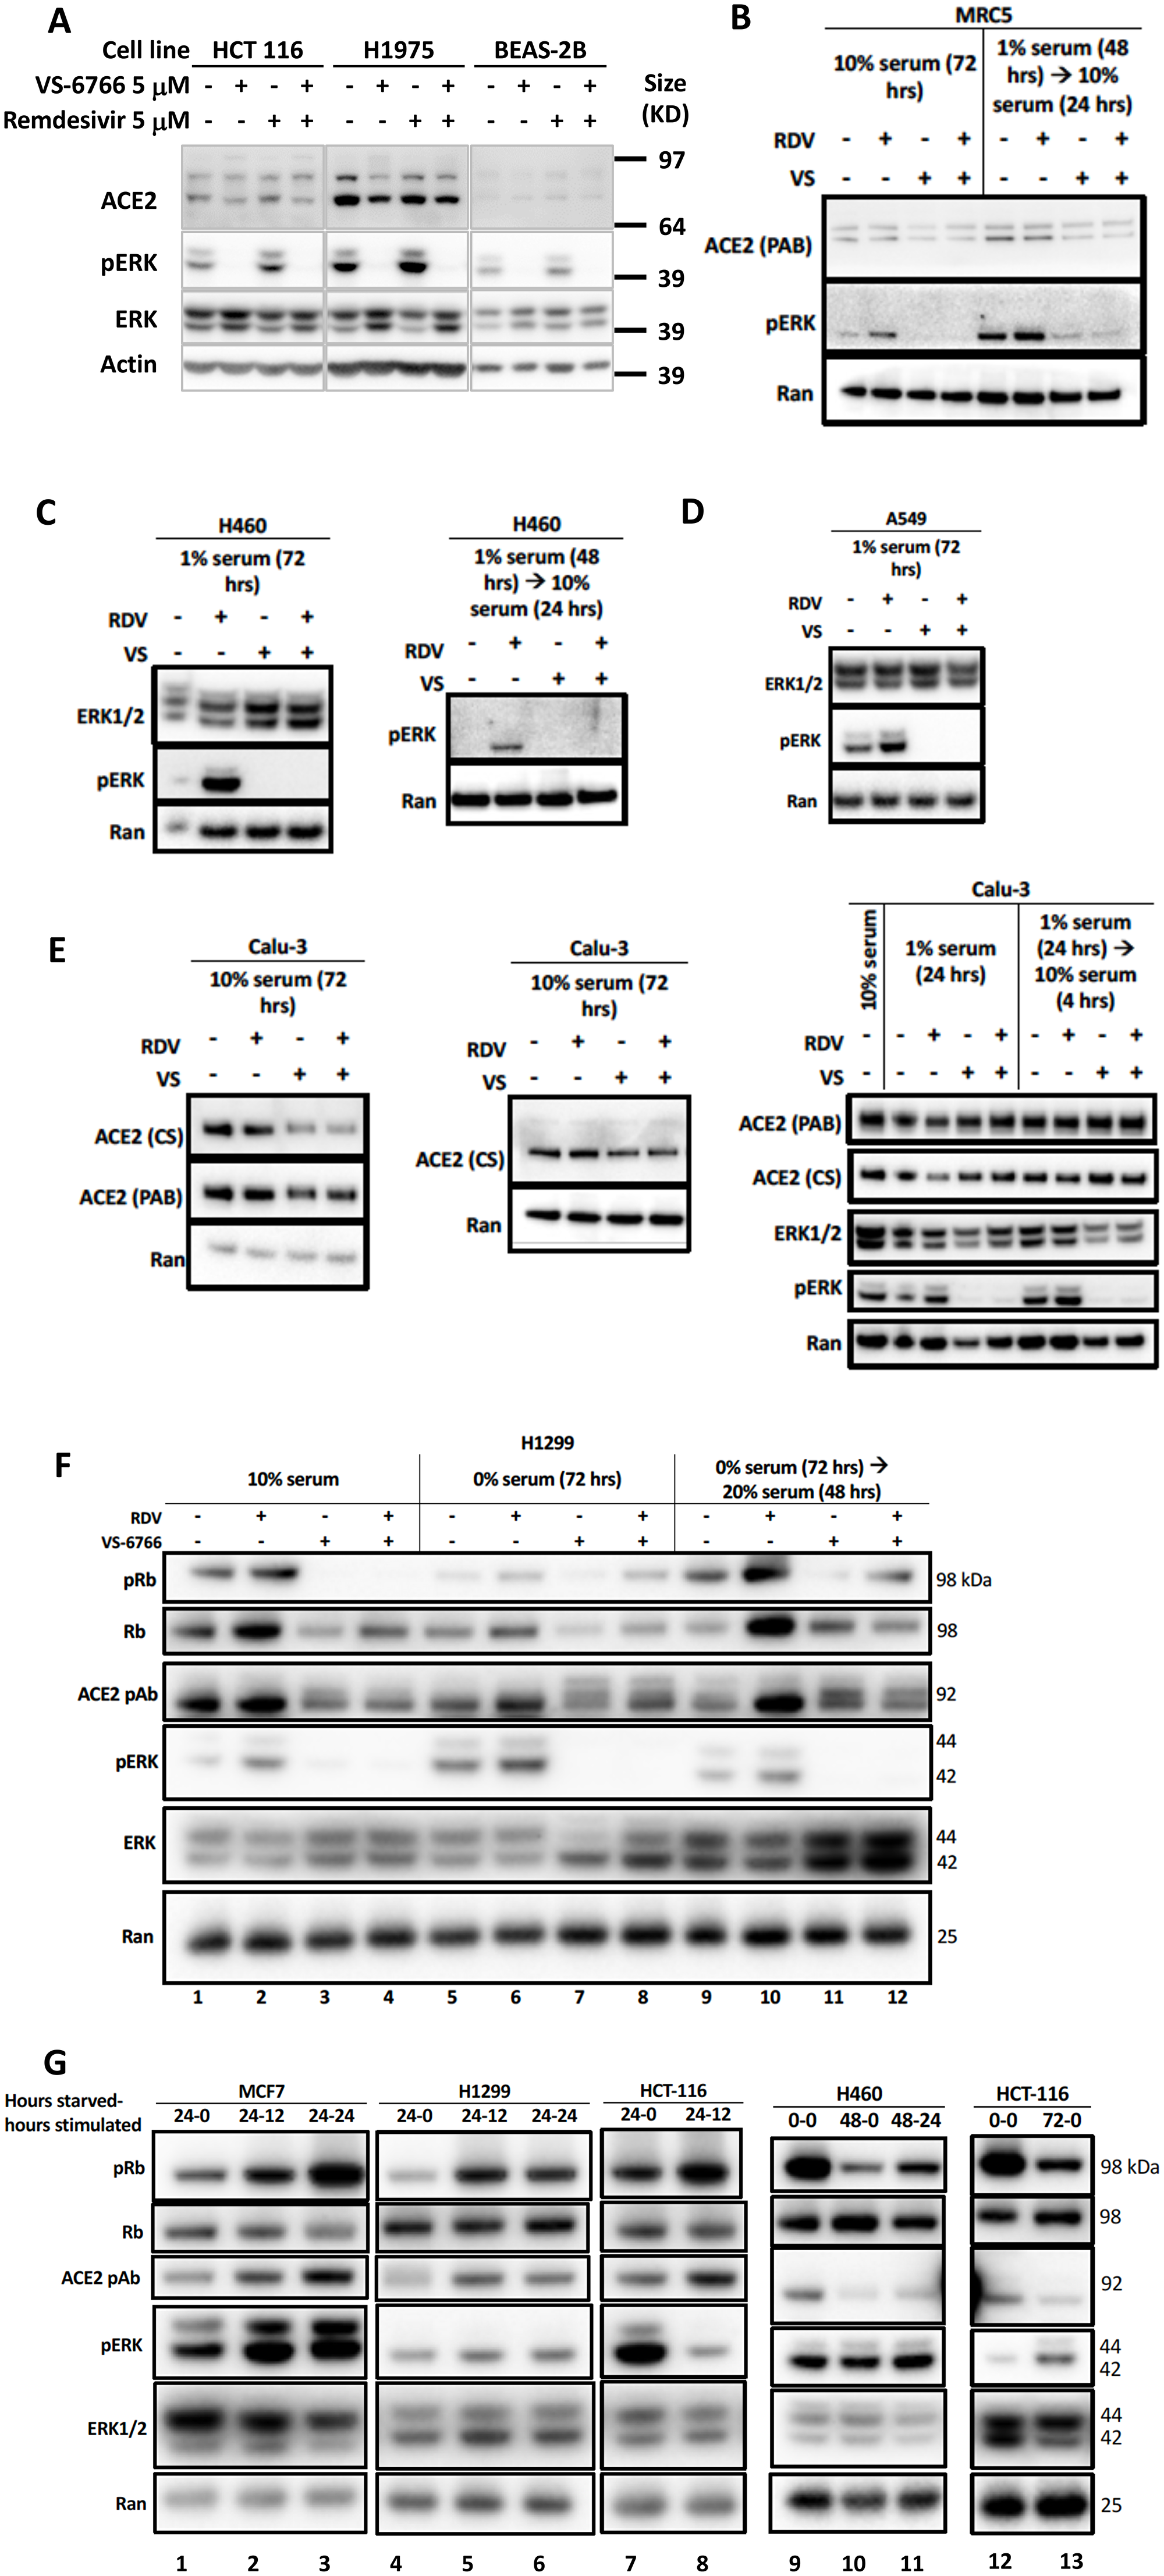 Reduced phospho-ERK and ACE2 expression by the combination of MEK inhibitor and remdesivir.